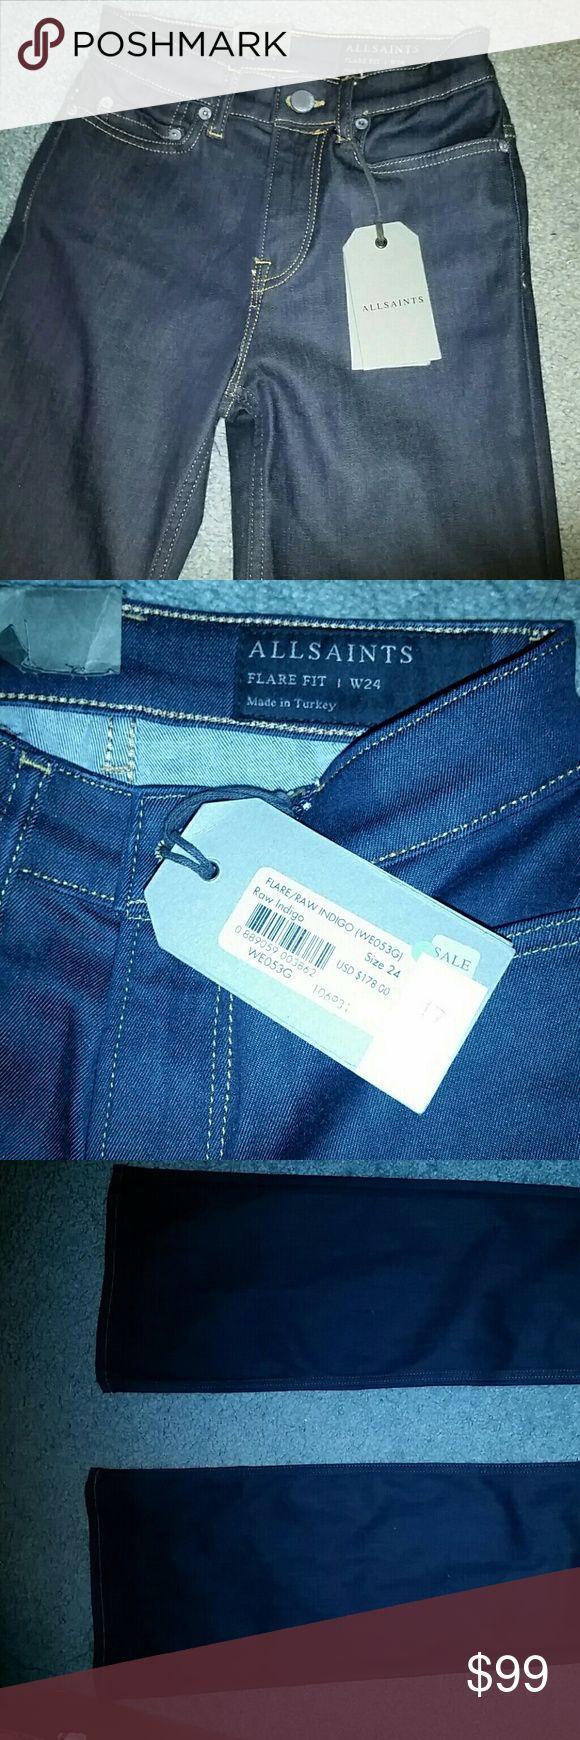 ALLSAINTS wide leg leg dark blue jeans 24 Beautiful raw indigo color with trending wide leg bottom. So amazing with any outfit! Never worn. New with tags. All Saints Jeans Flare & Wide Leg